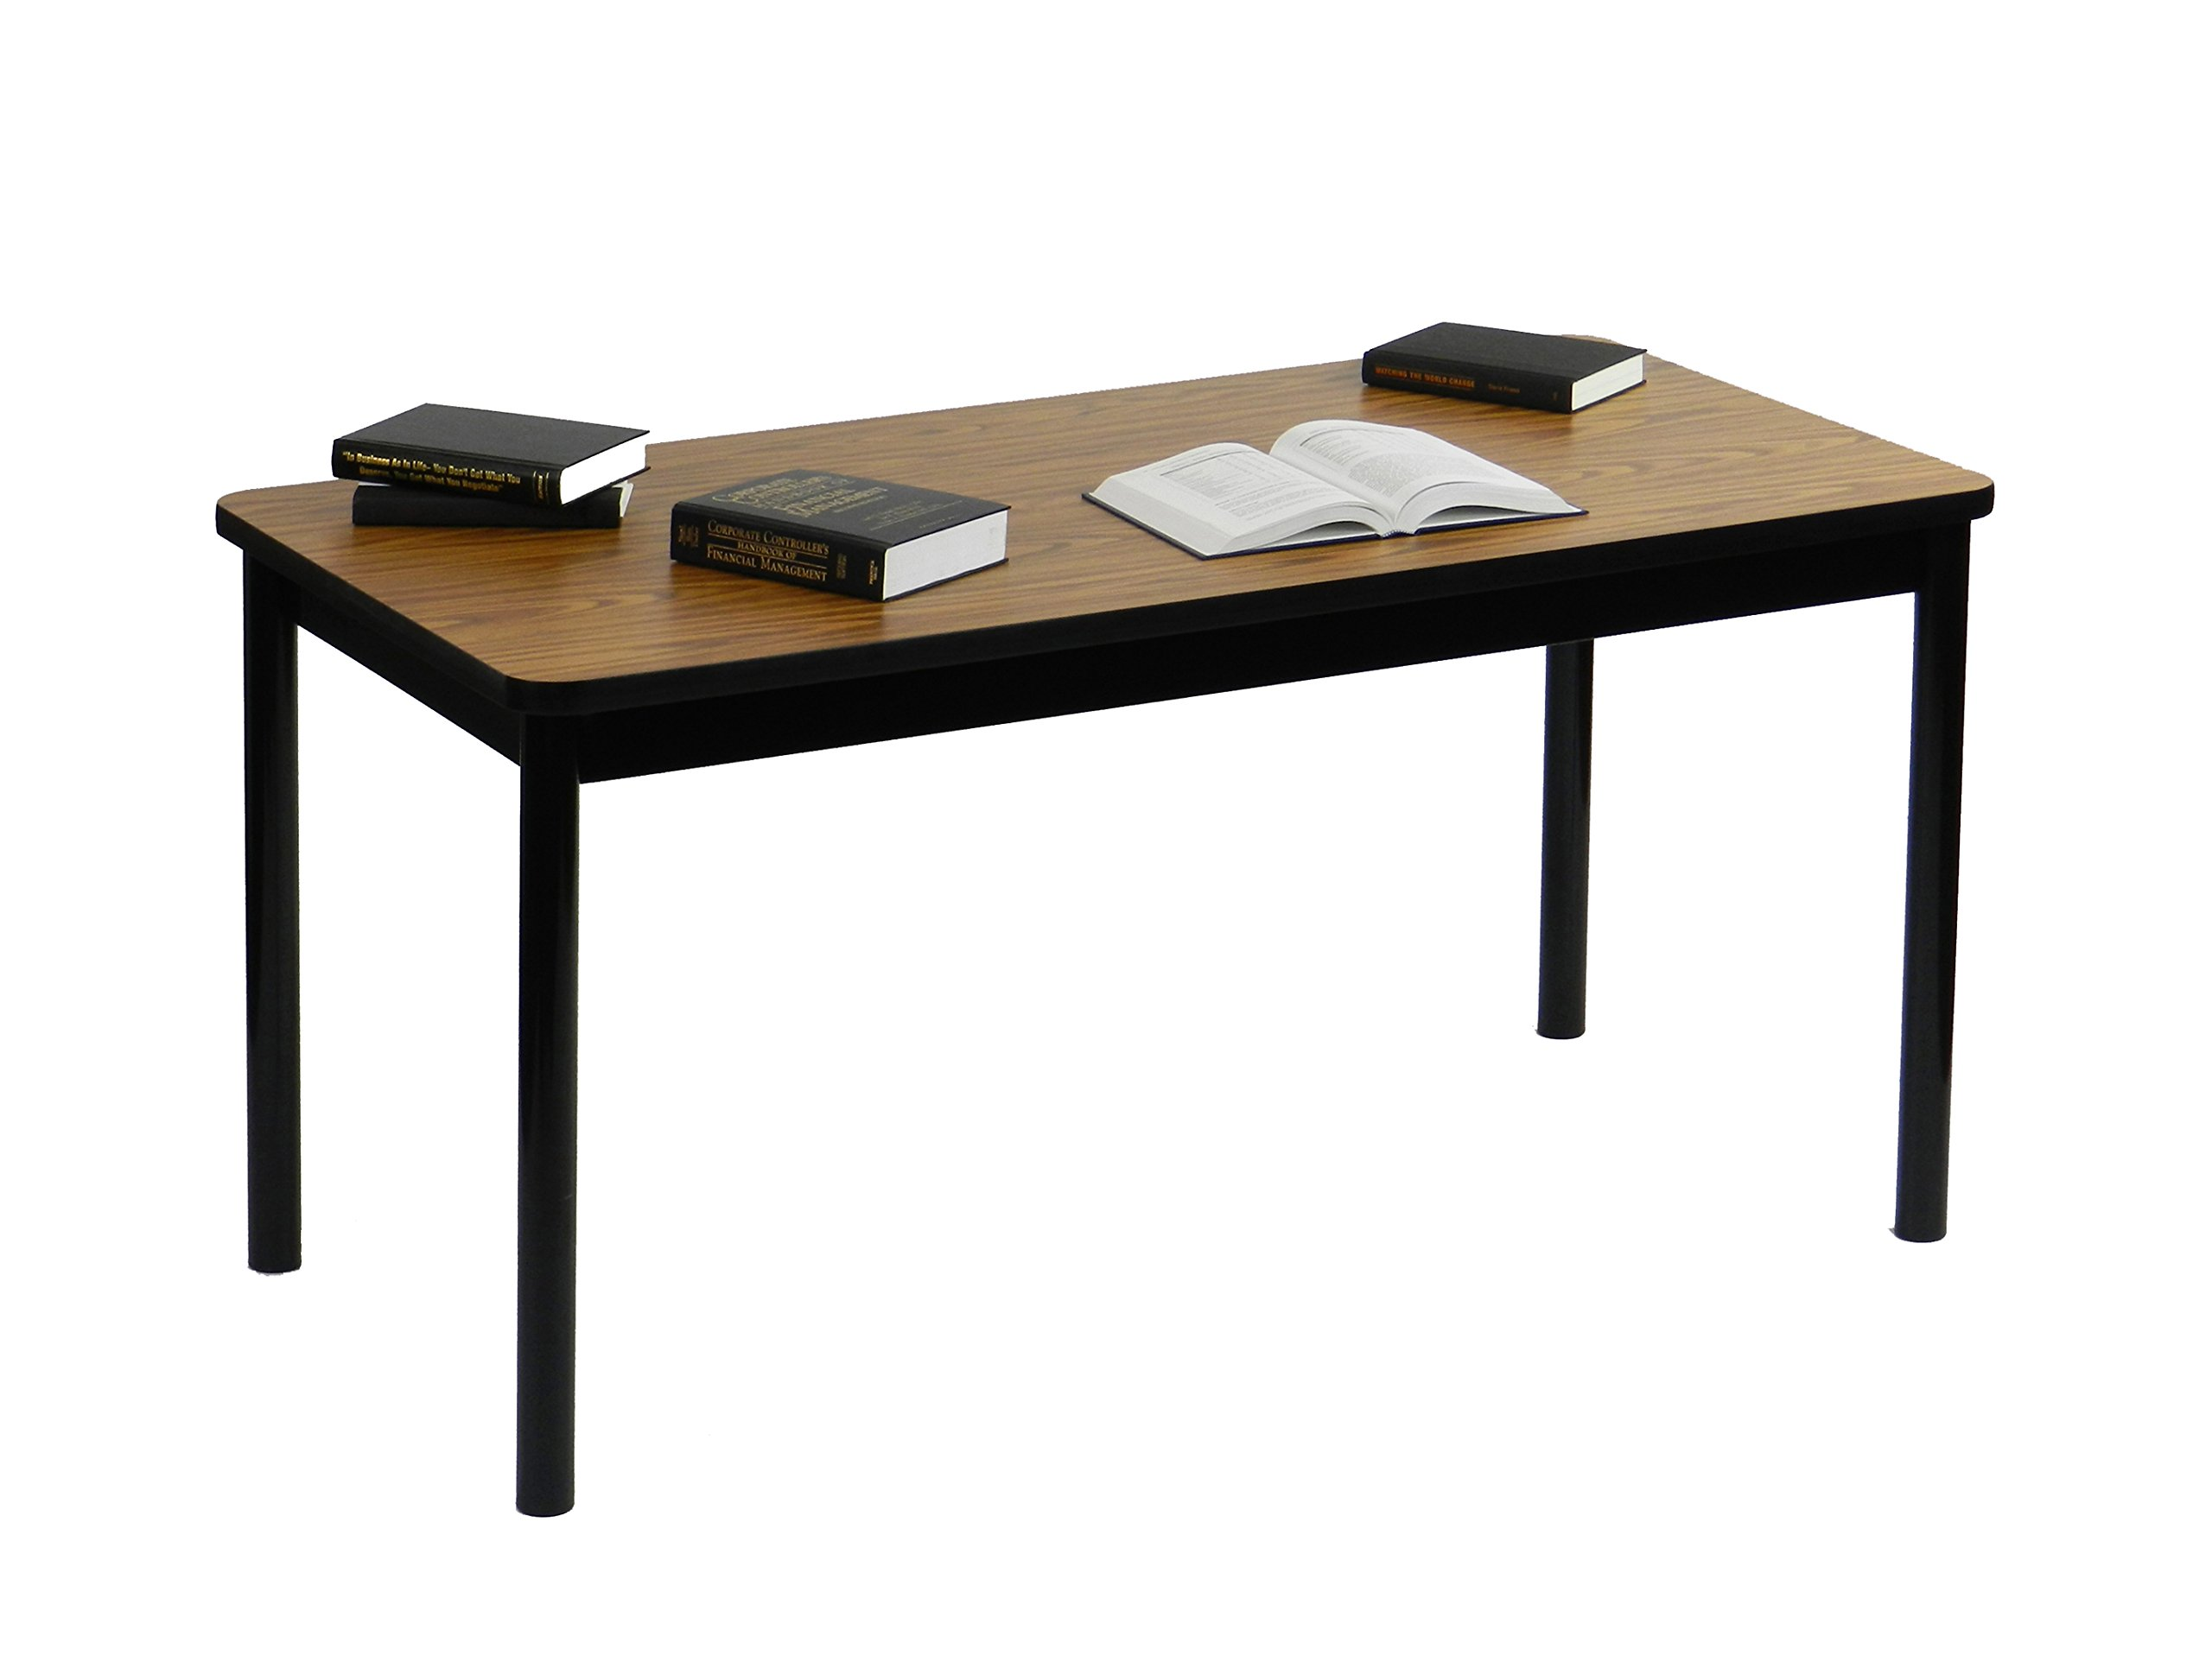 Correll 30''x60'' Office & Utility Work Table, Rock Solid Commercial Quality, Medium Oak High-Pressure Laminate, Black Frame (LR3060-06) by Correll (Image #4)